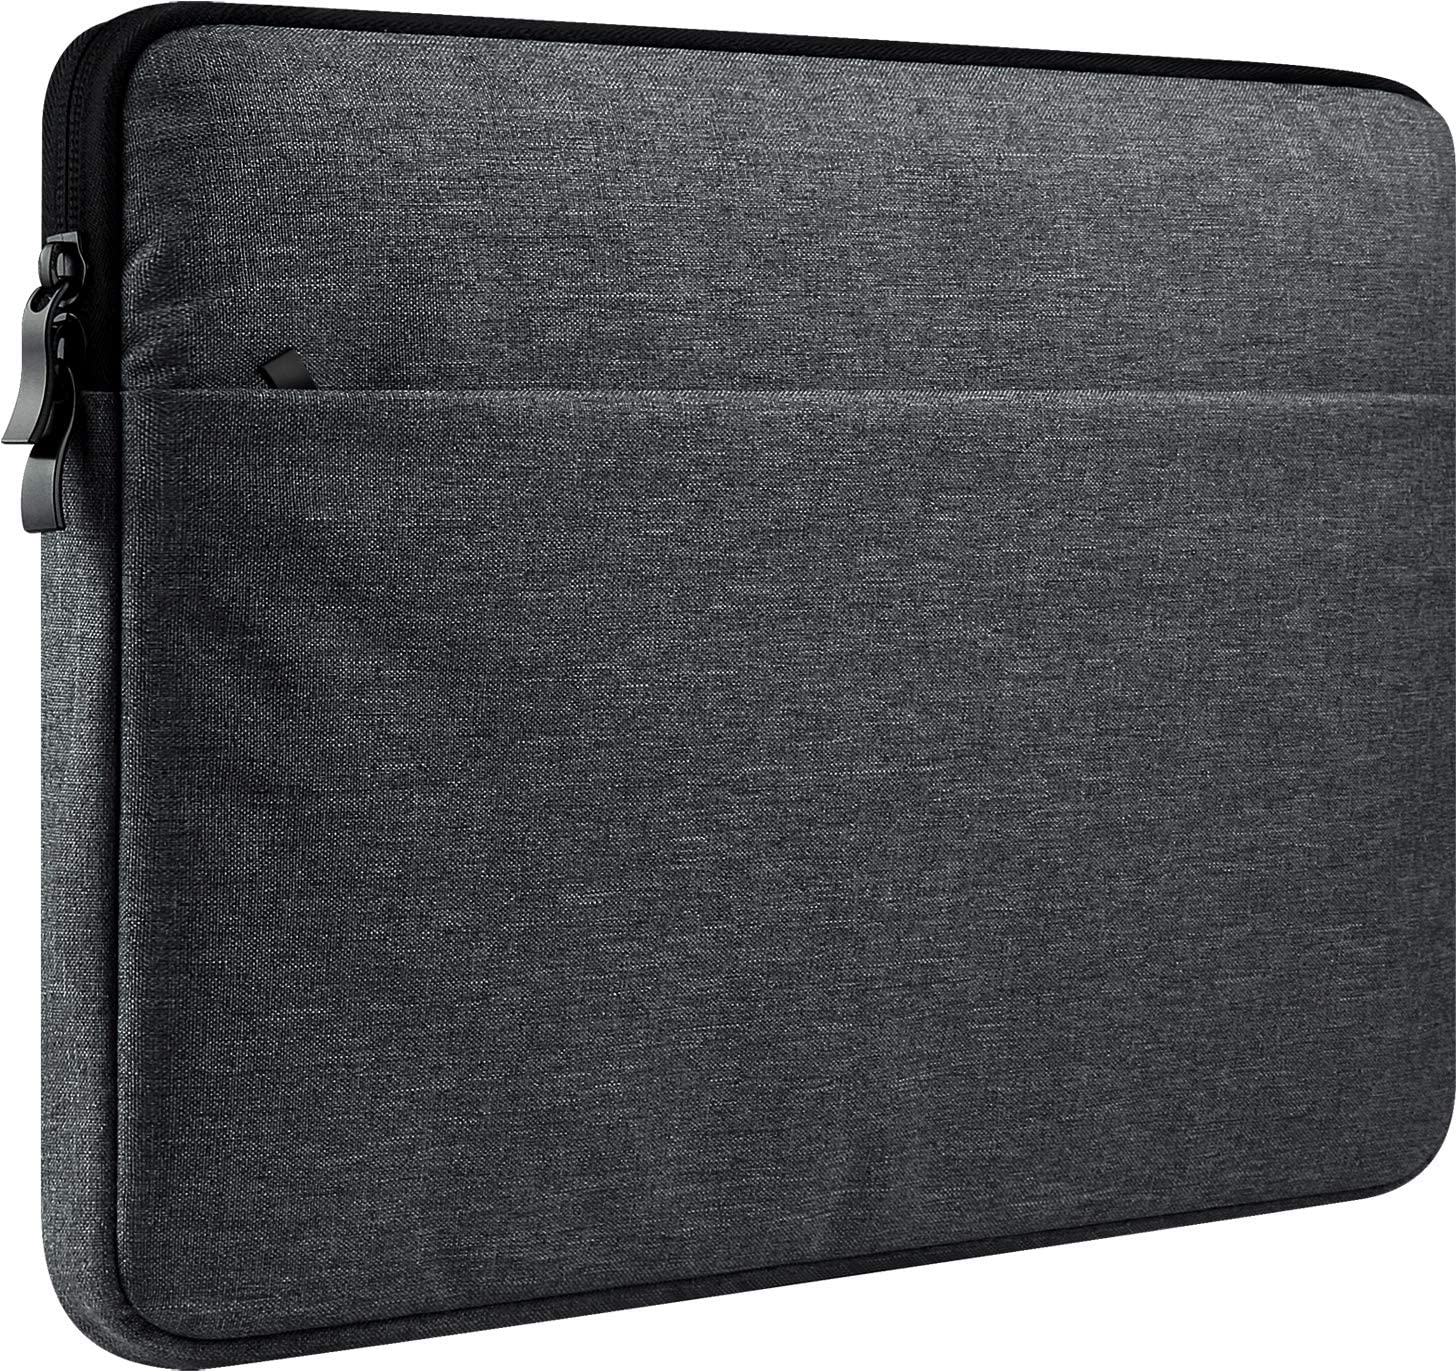 """CCPK 14-15 Inch Laptop Sleeve Compatible for New 15.4"""" MacBook Pro with Touch Bar 2018 2017 2016 A1707 A1990 Retina 2012 to 2015 A1398 14"""" Hp Probook 640 Elitebook 840 g3 Case Bag Pocket Black Grey"""